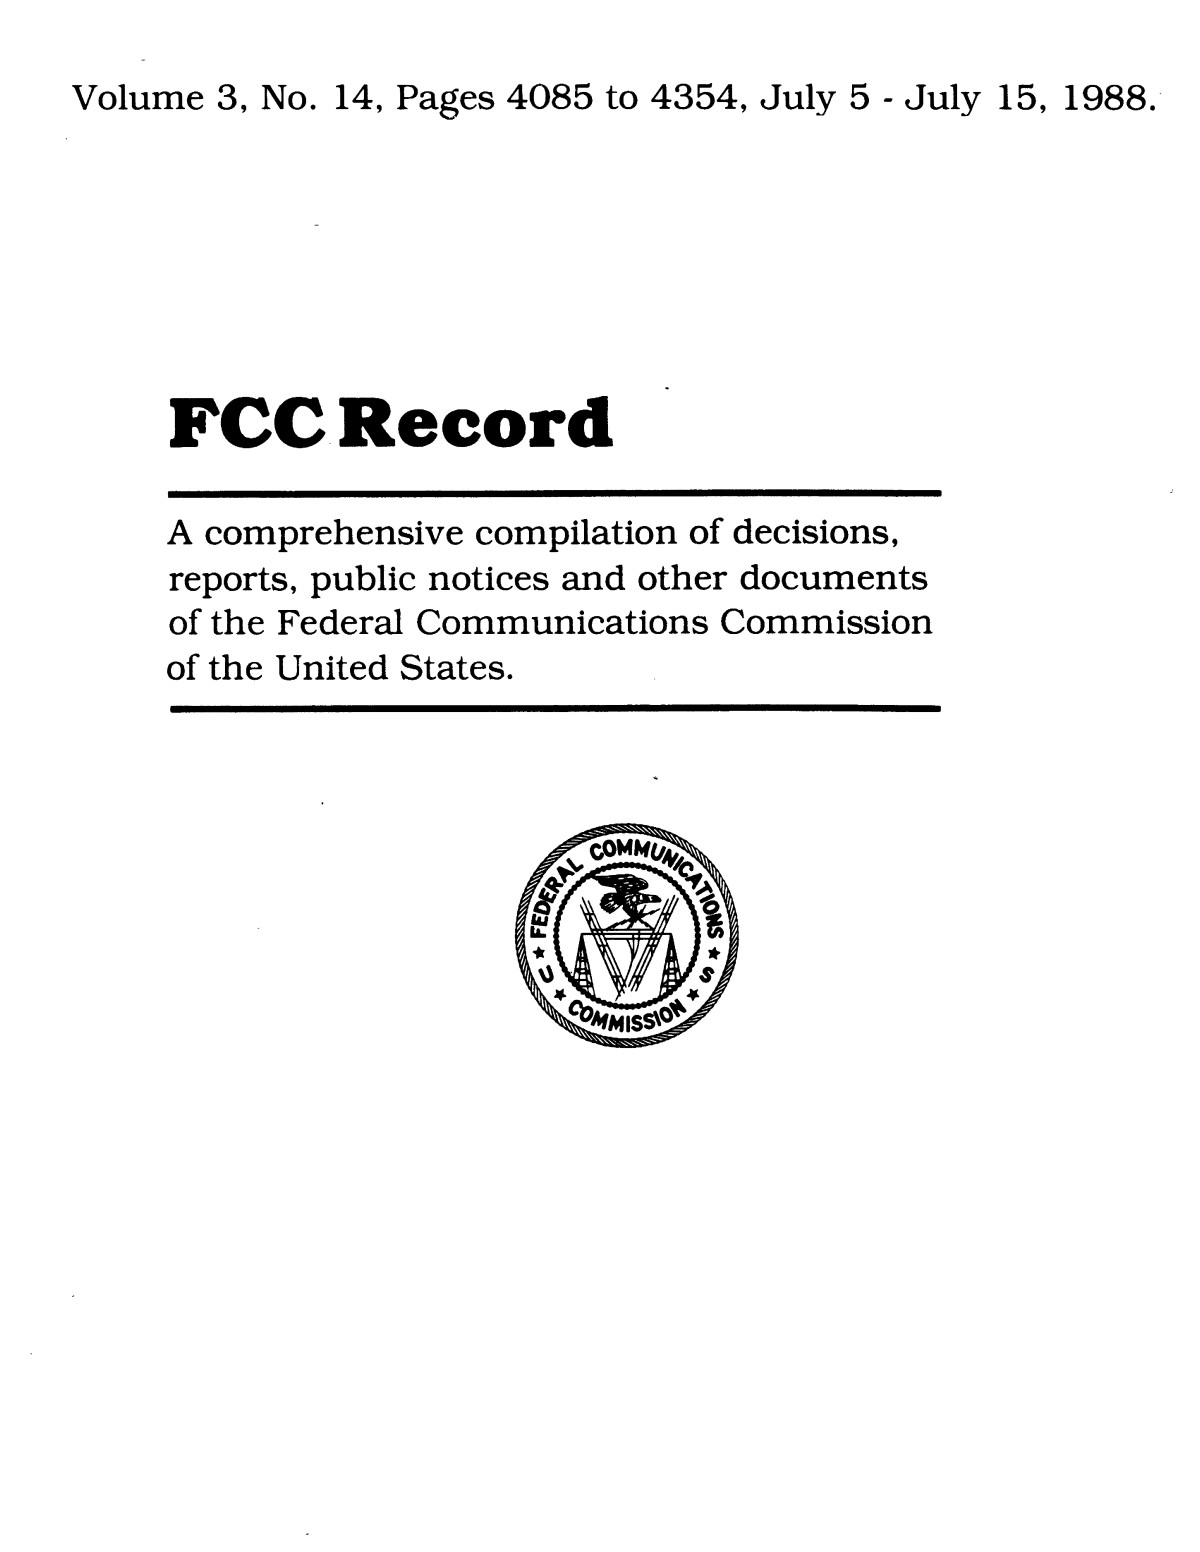 FCC Record, Volume 3, No. 14, Pages 4085 to 4354, July 5 - July 15, 1988                                                                                                      Front Cover